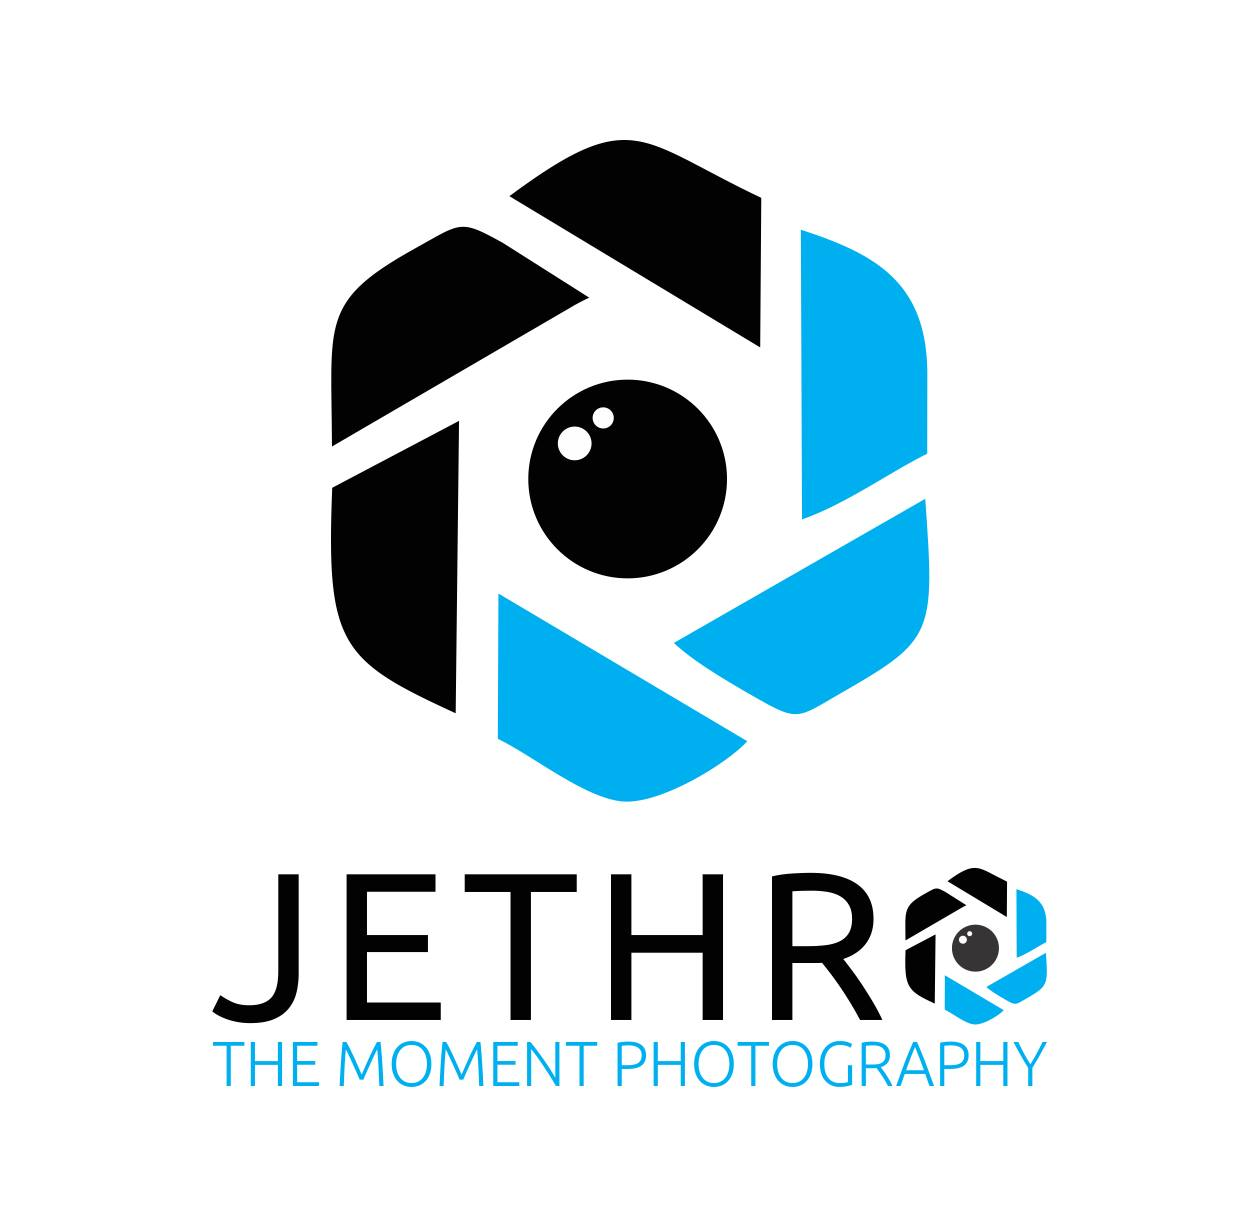 Jethro - The Moment Photography